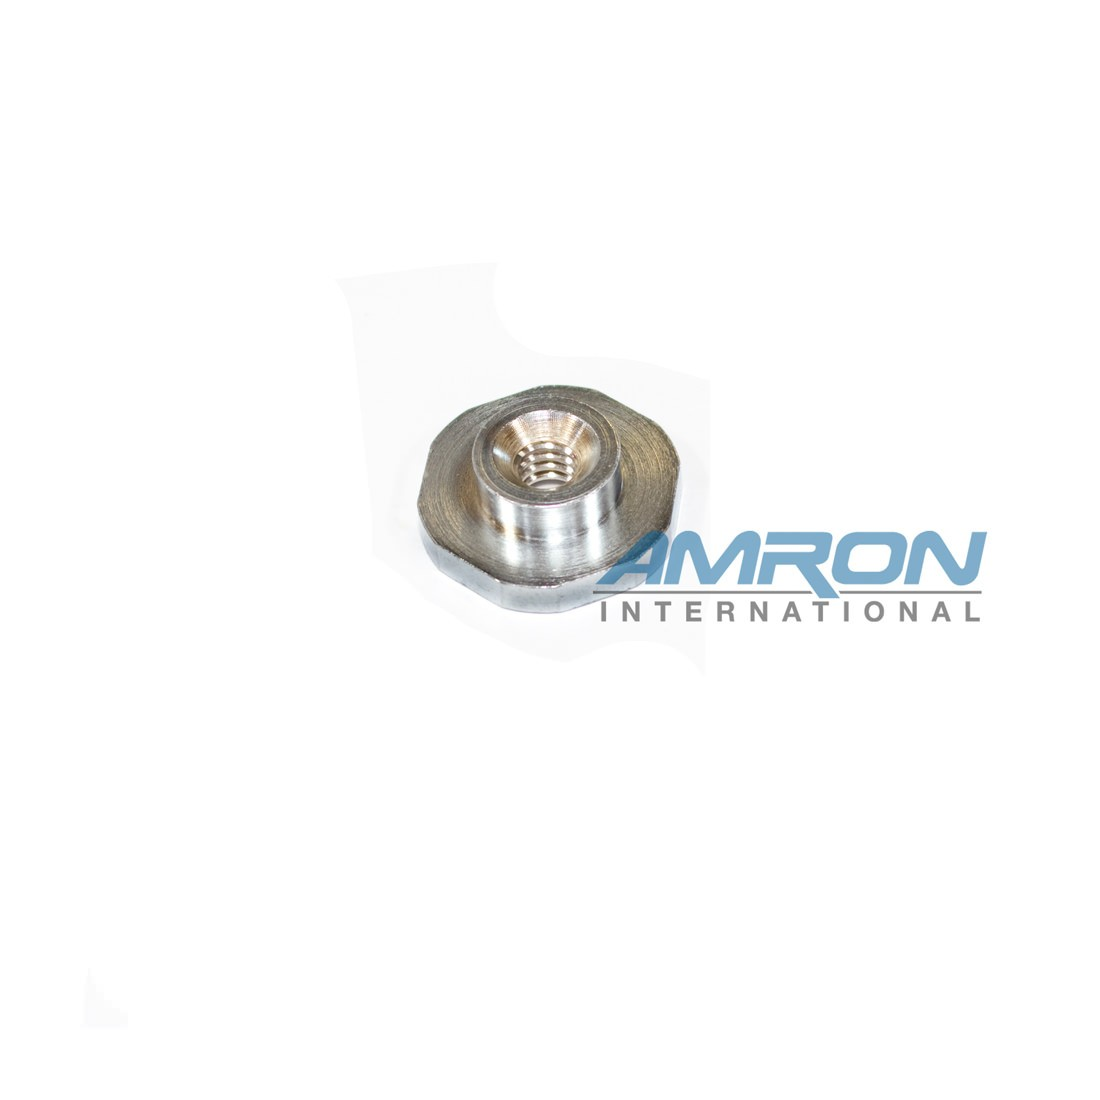 Kirby Morgan 550-113 Adjustment Nut